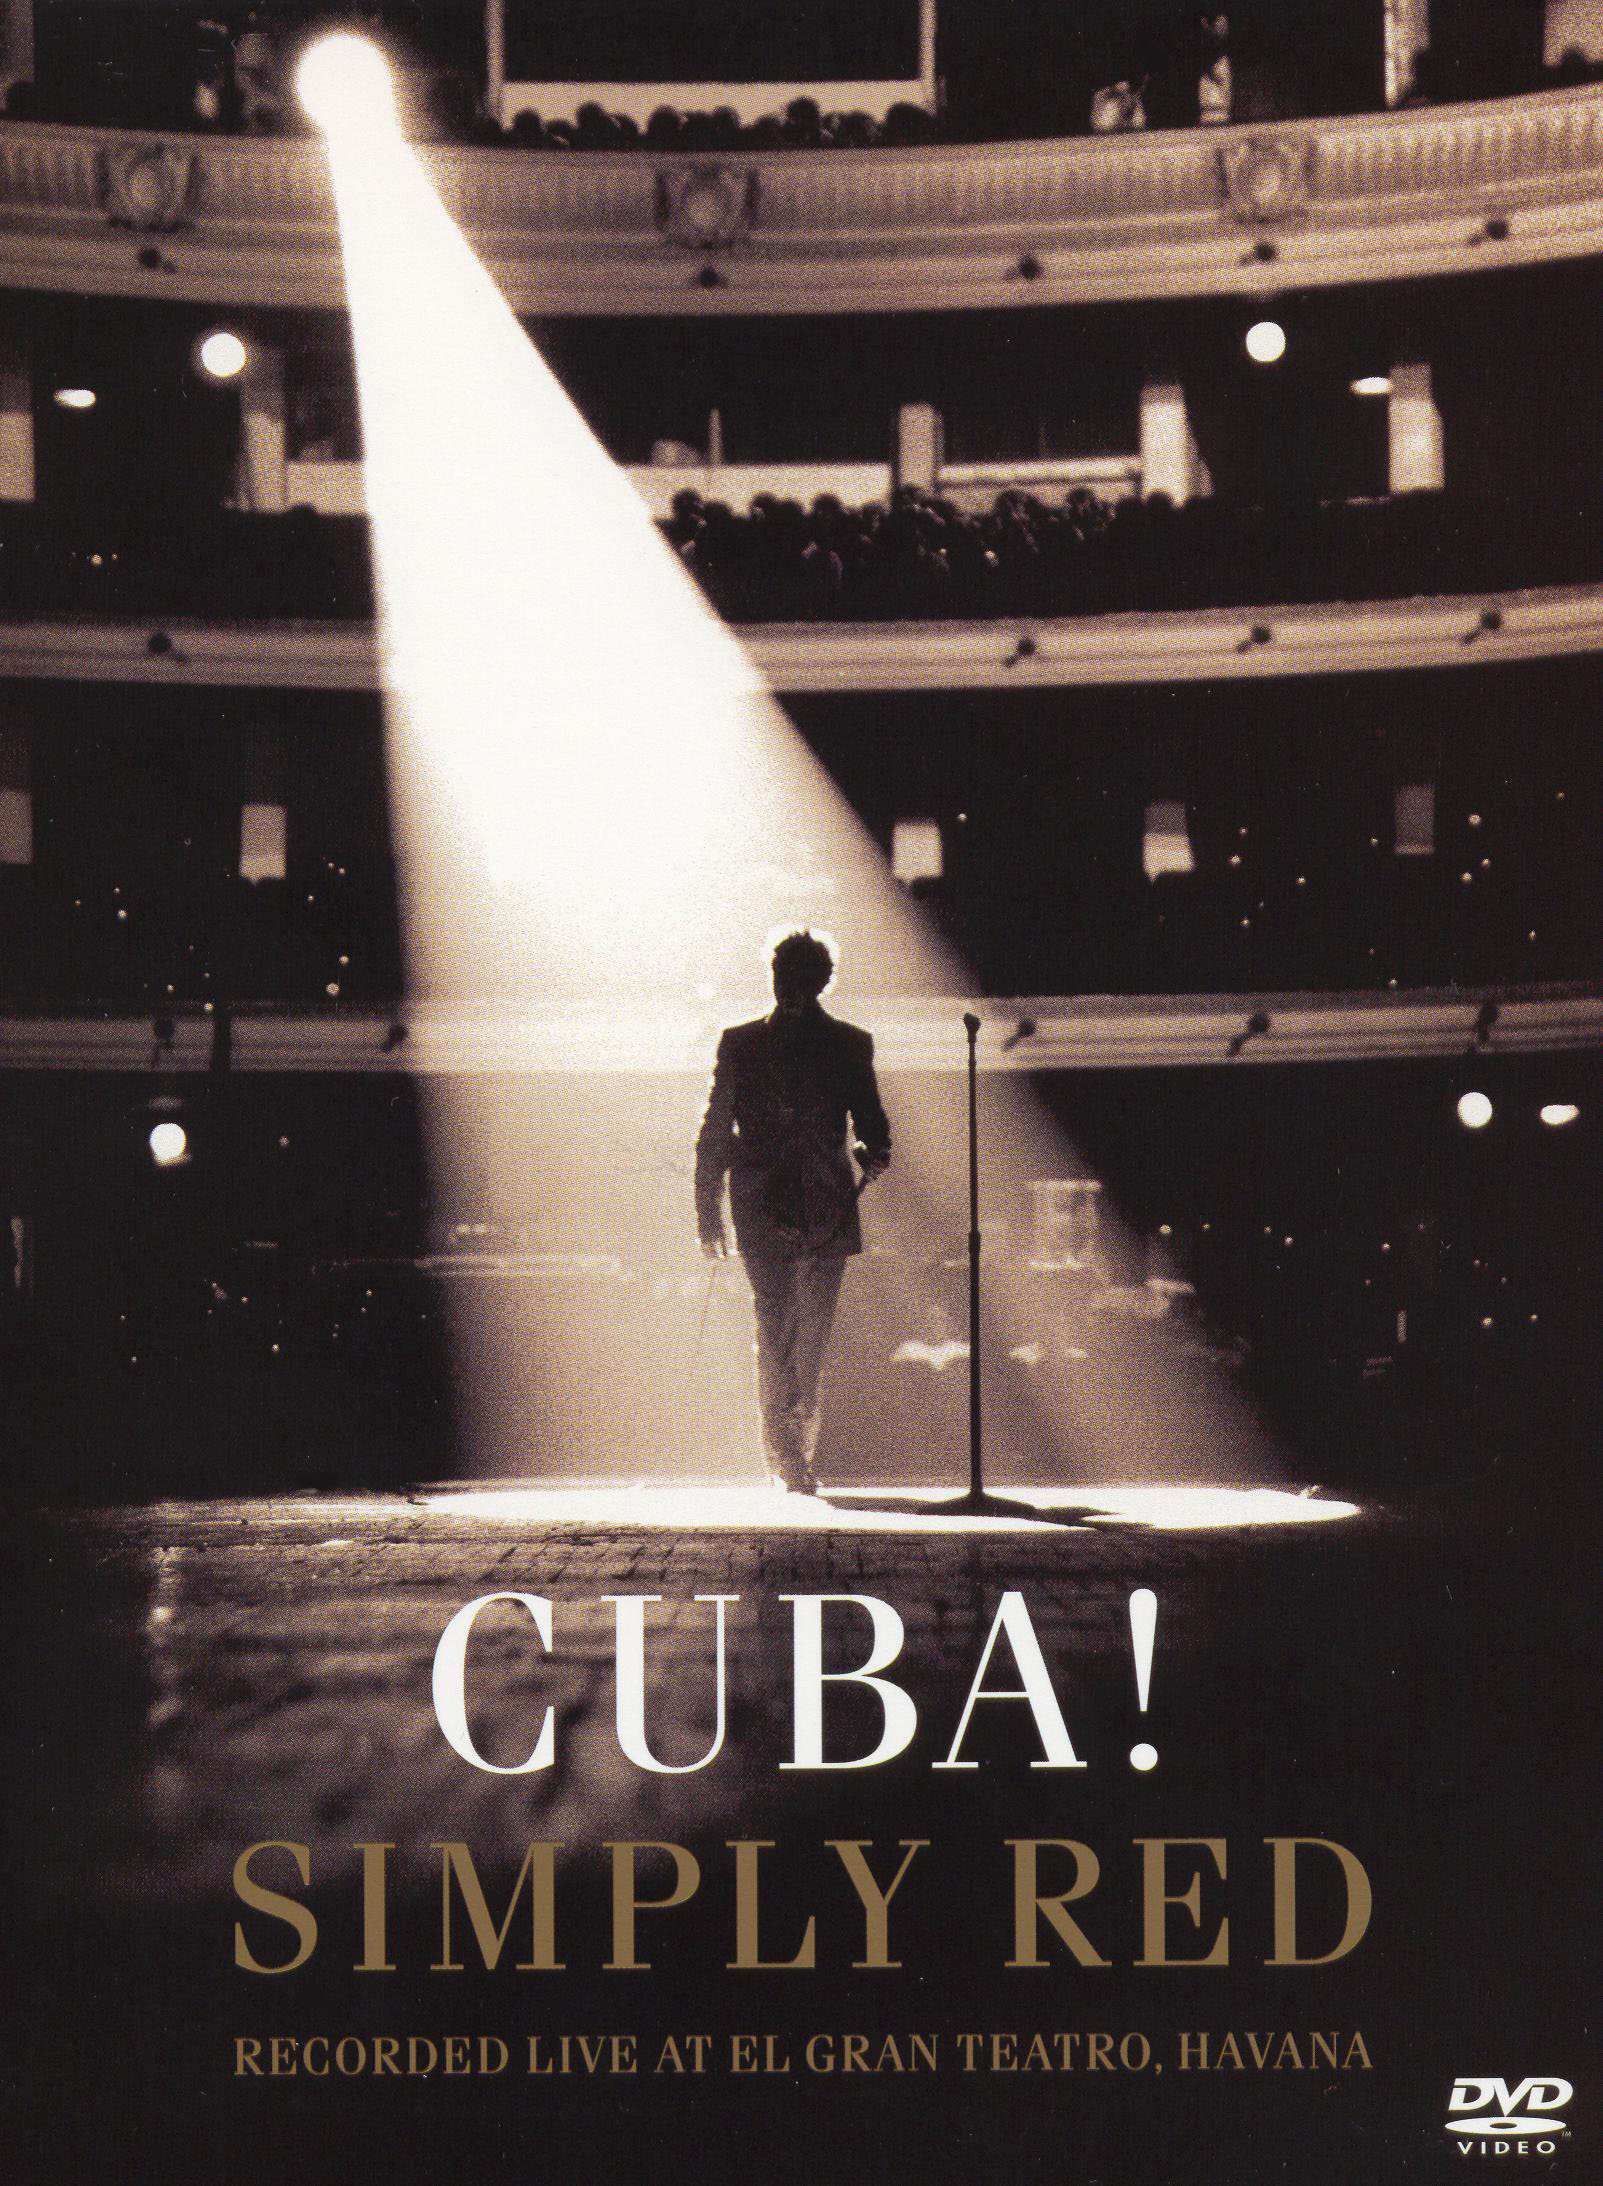 Simply Red: Cuba!